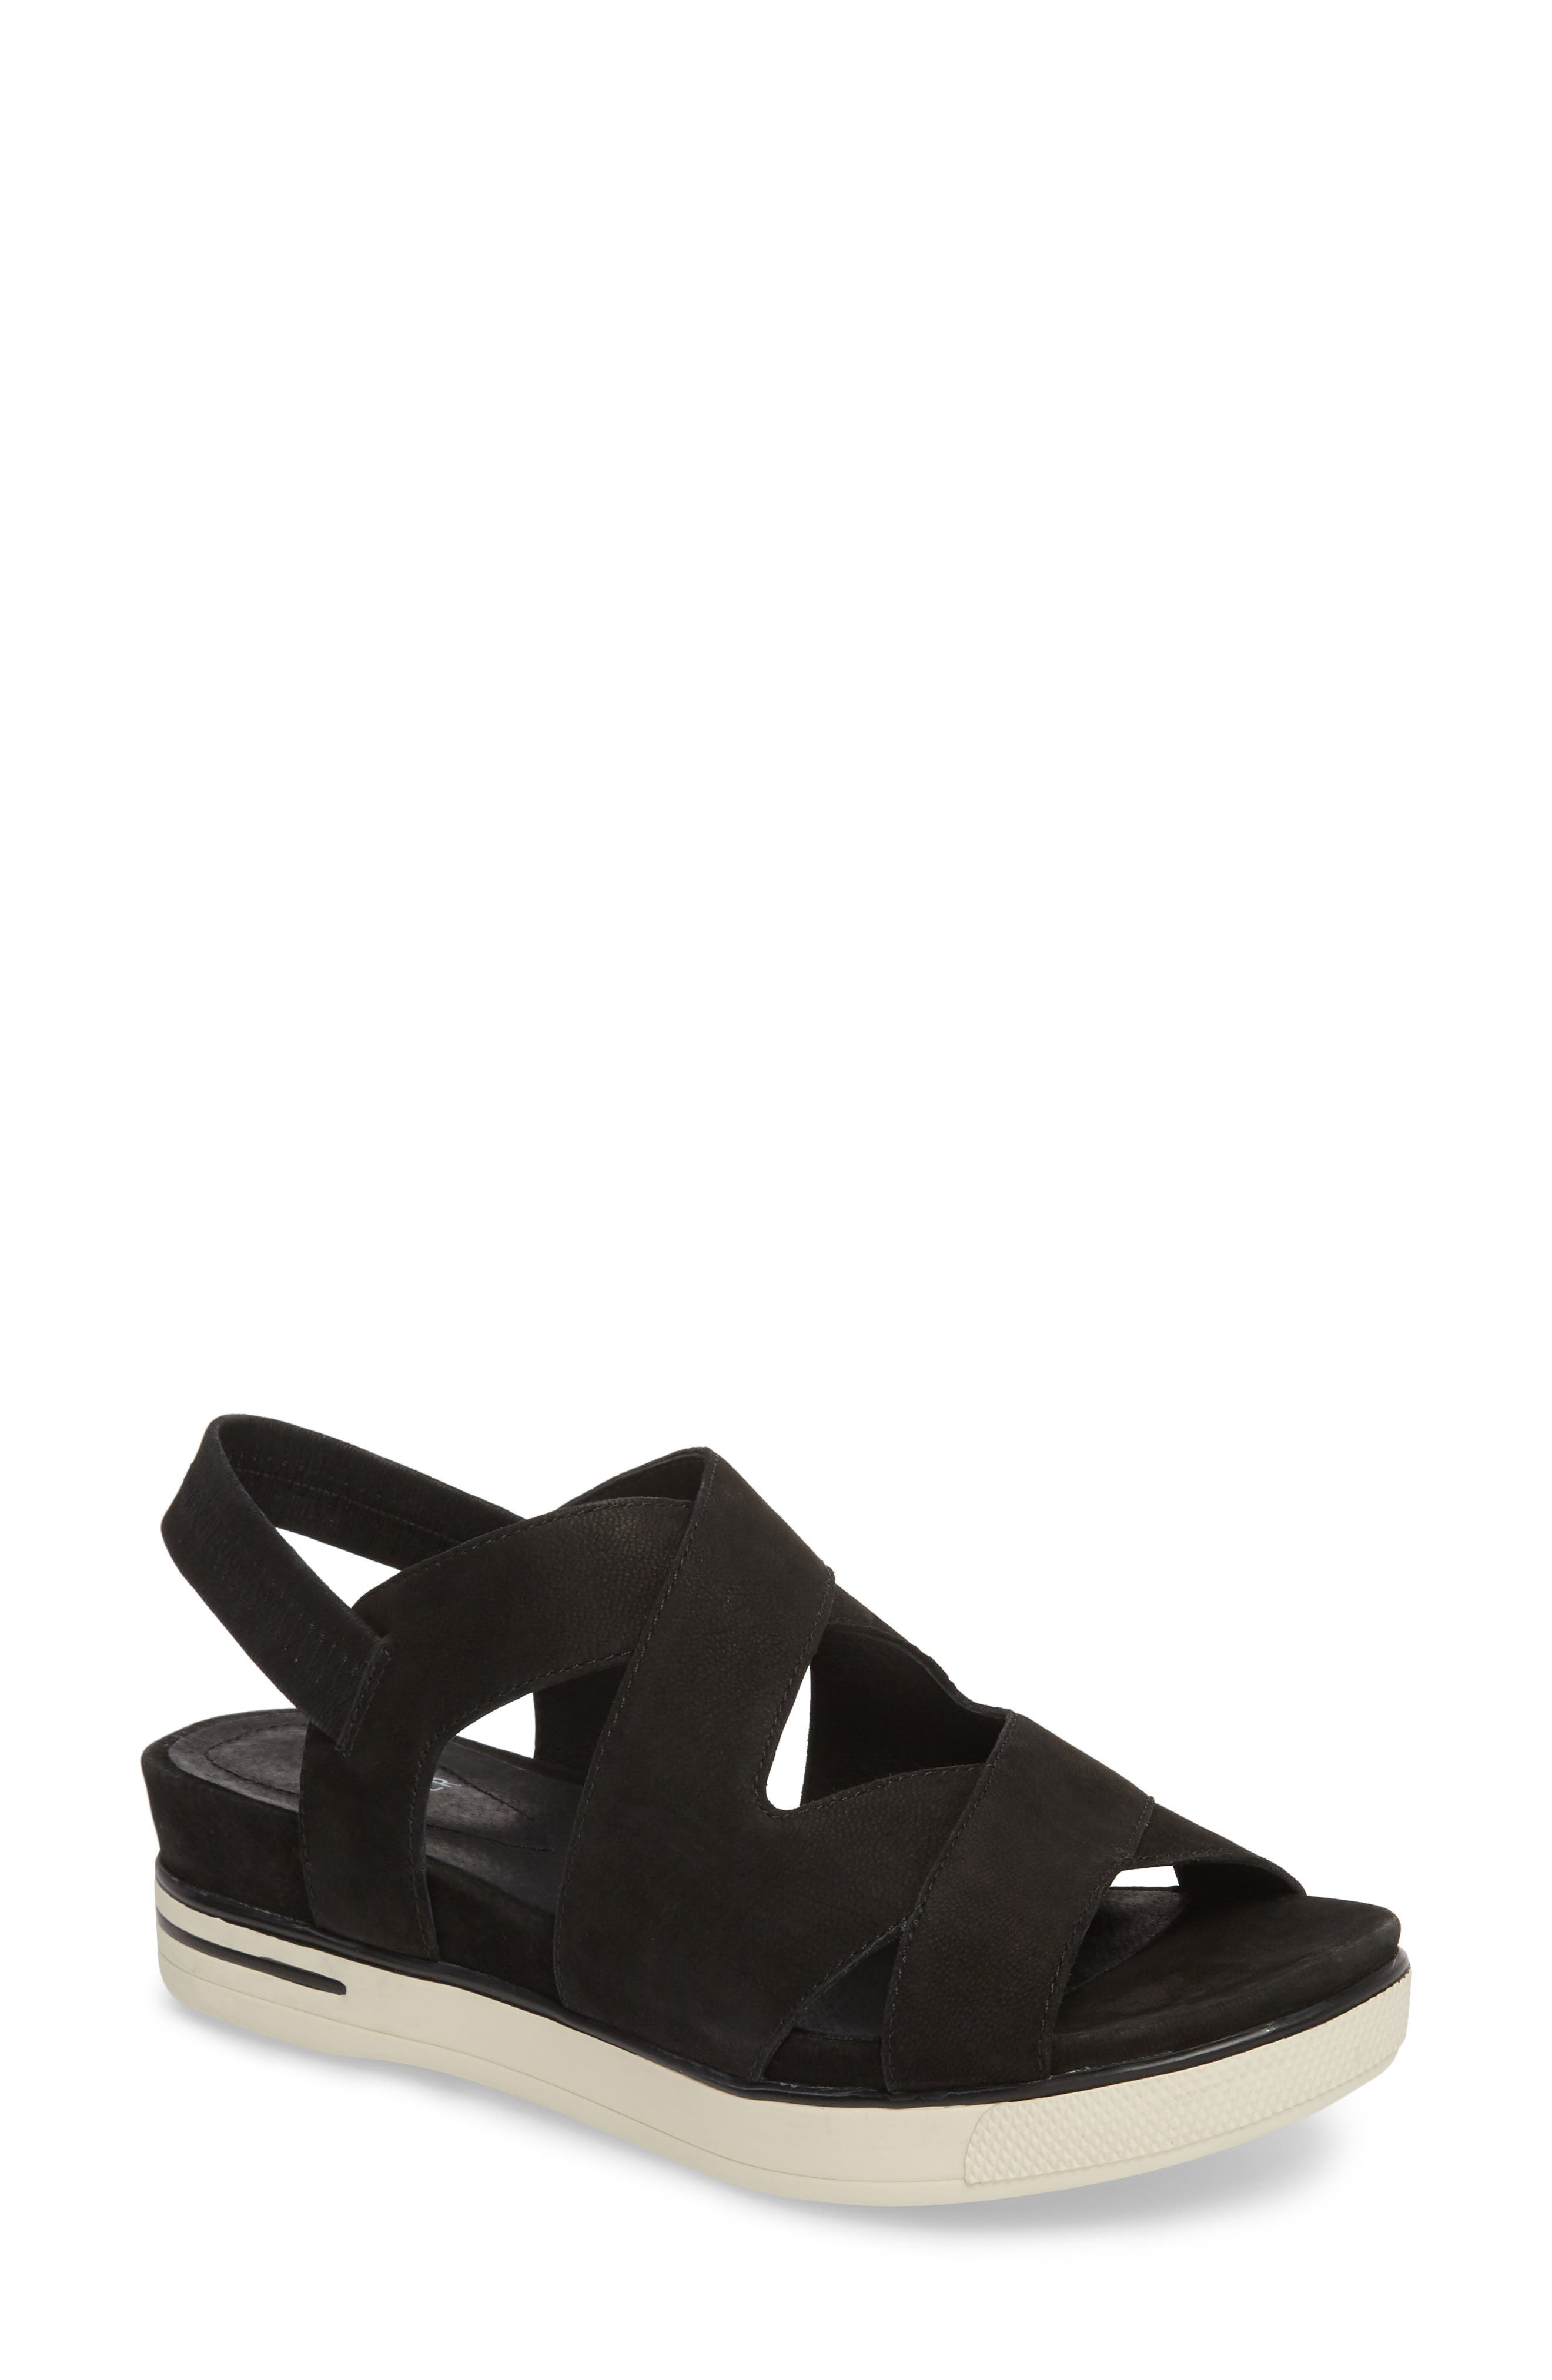 Sonny Sandal,                         Main,                         color,